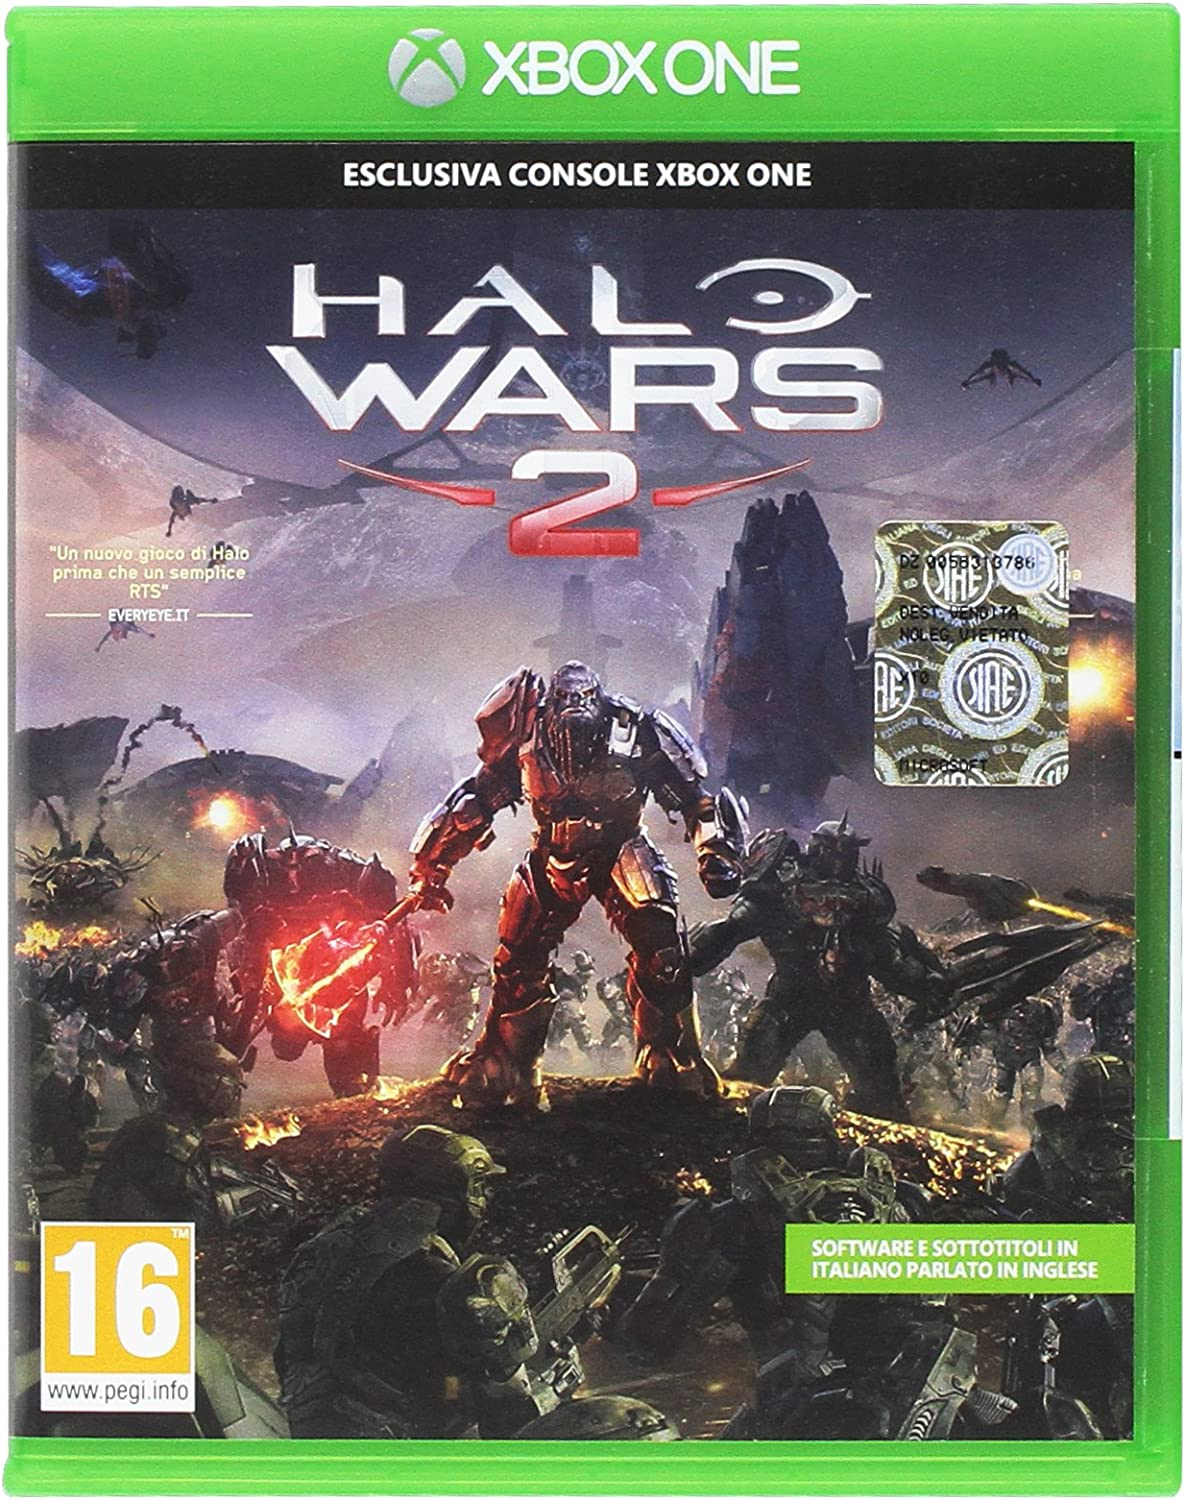 Halo Wars 2 - Xbox One [Importación italiana]: Amazon.es: Electrónica